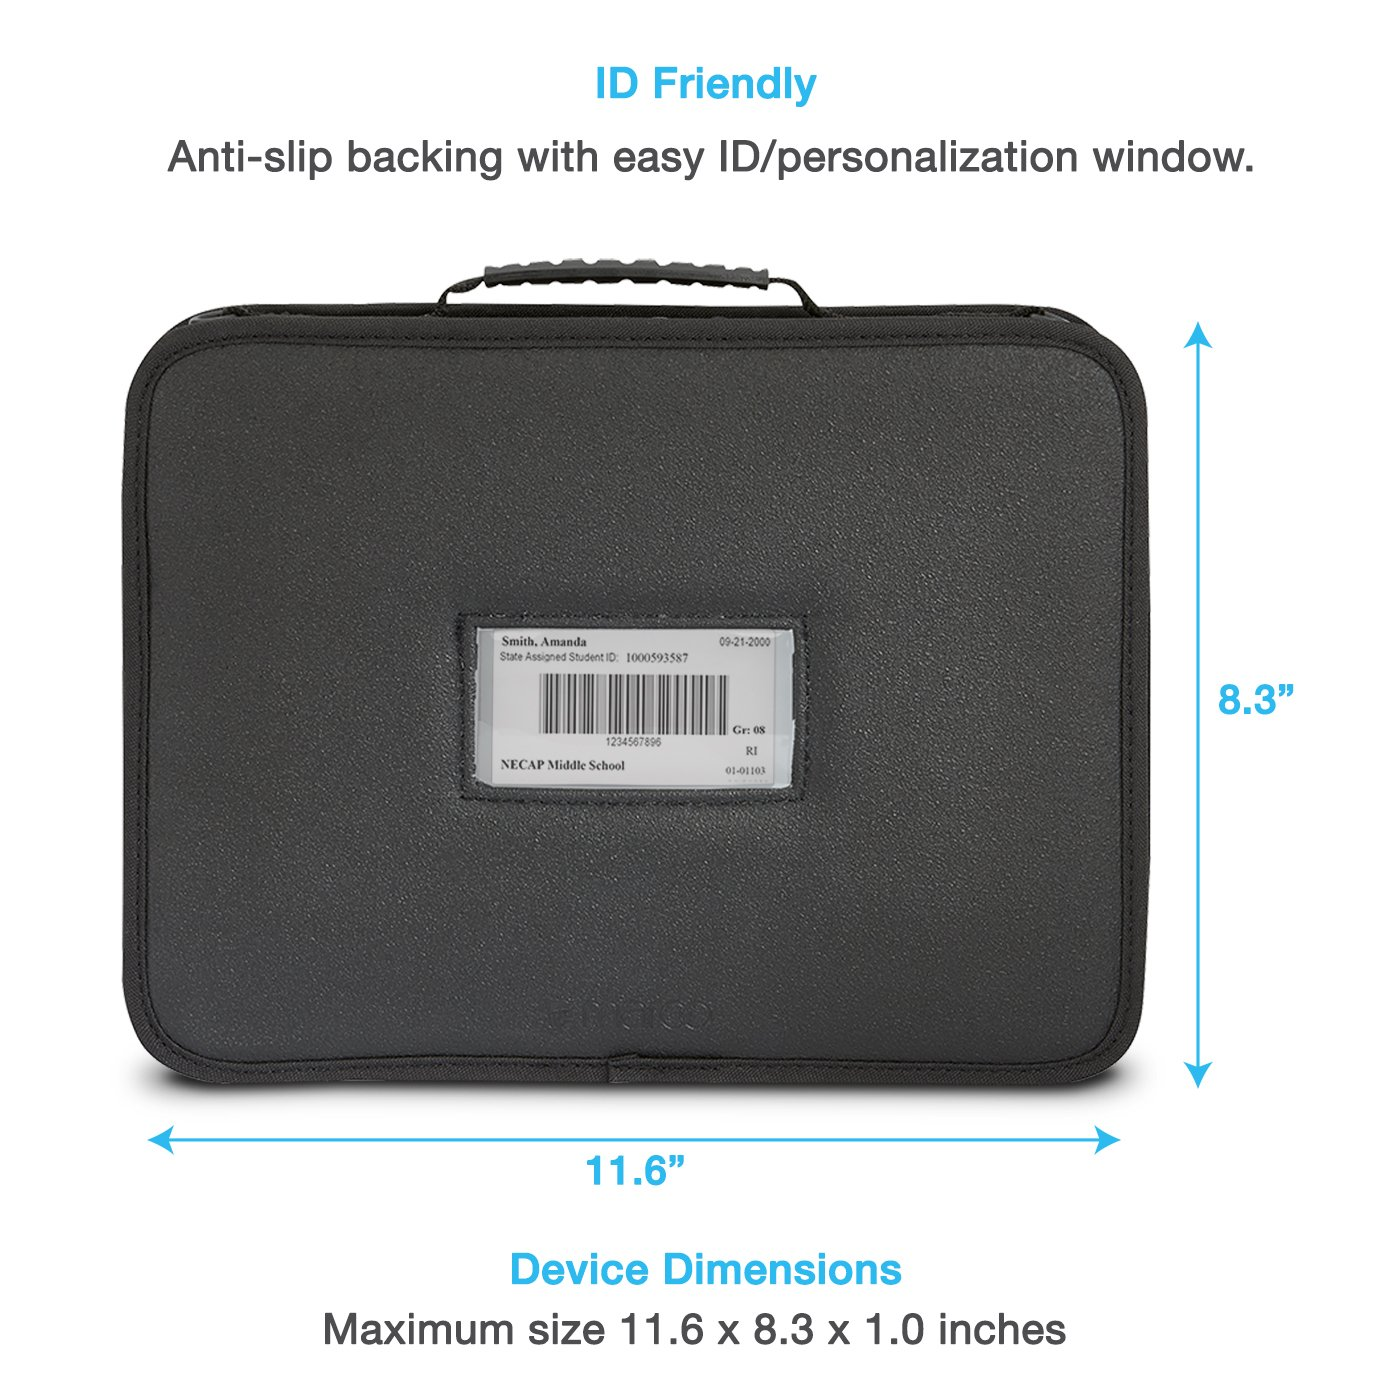 Ultrabook and Notebooks for Students and Business UZBL 11-11.6 inch EVA Always On Work-in Protective Laptop Sleeve and Case with Accessory Pouch Carrying Handle and Shoulder Strap for Chromebook